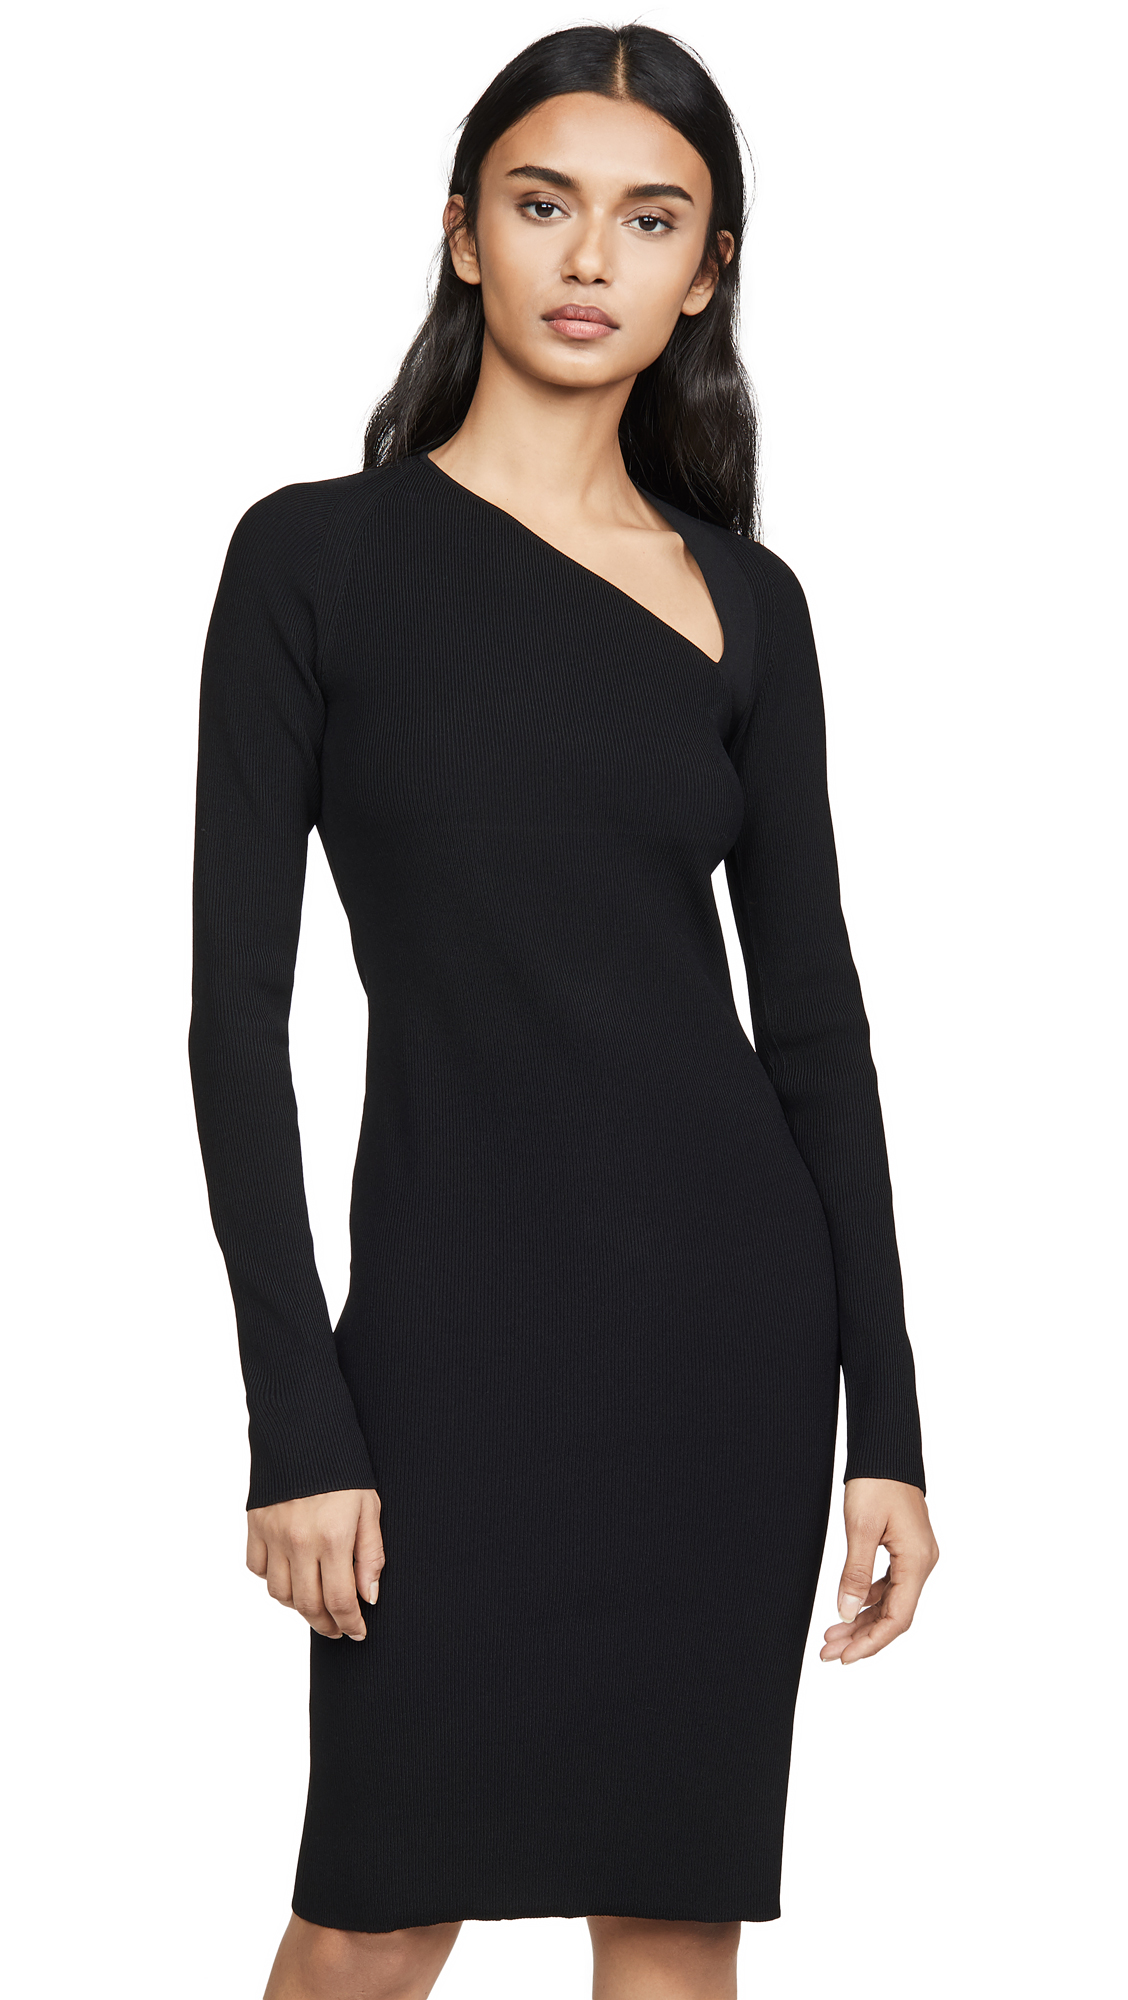 Helmut Lang Raglan Dress - 30% Off Sale